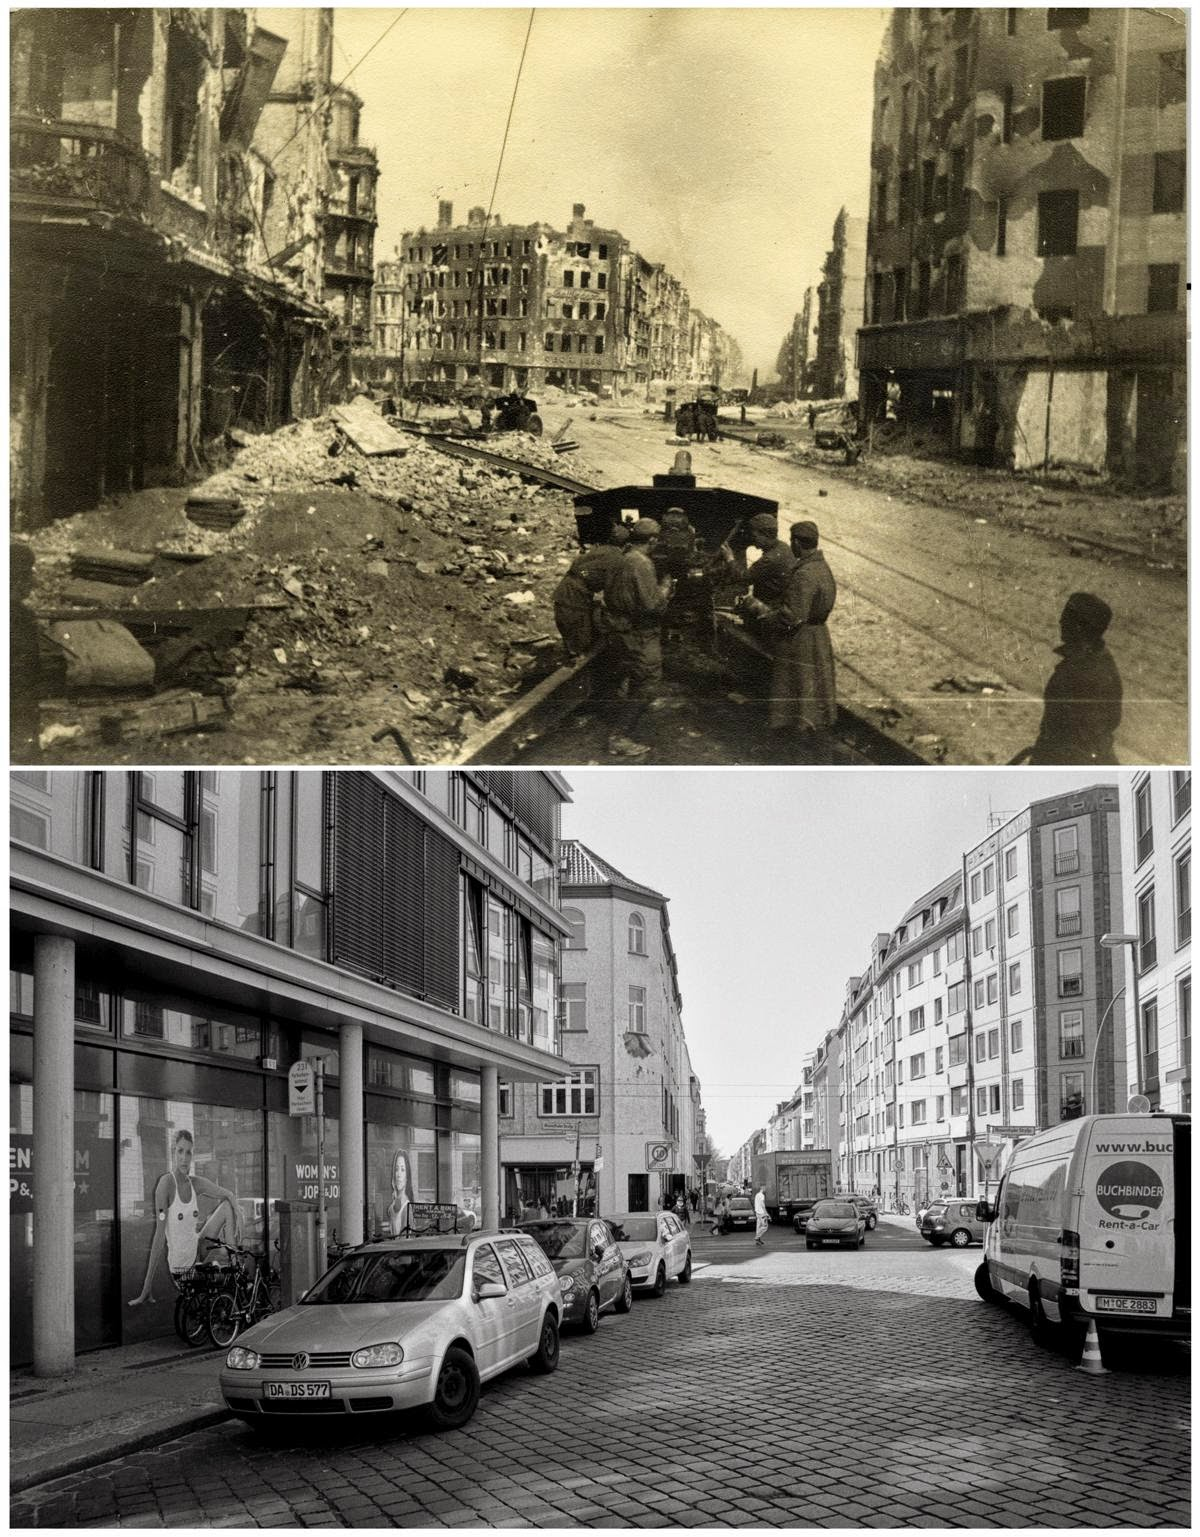 berlin battleground pictures of the battle for berlin and 70 years later vintage everyday. Black Bedroom Furniture Sets. Home Design Ideas